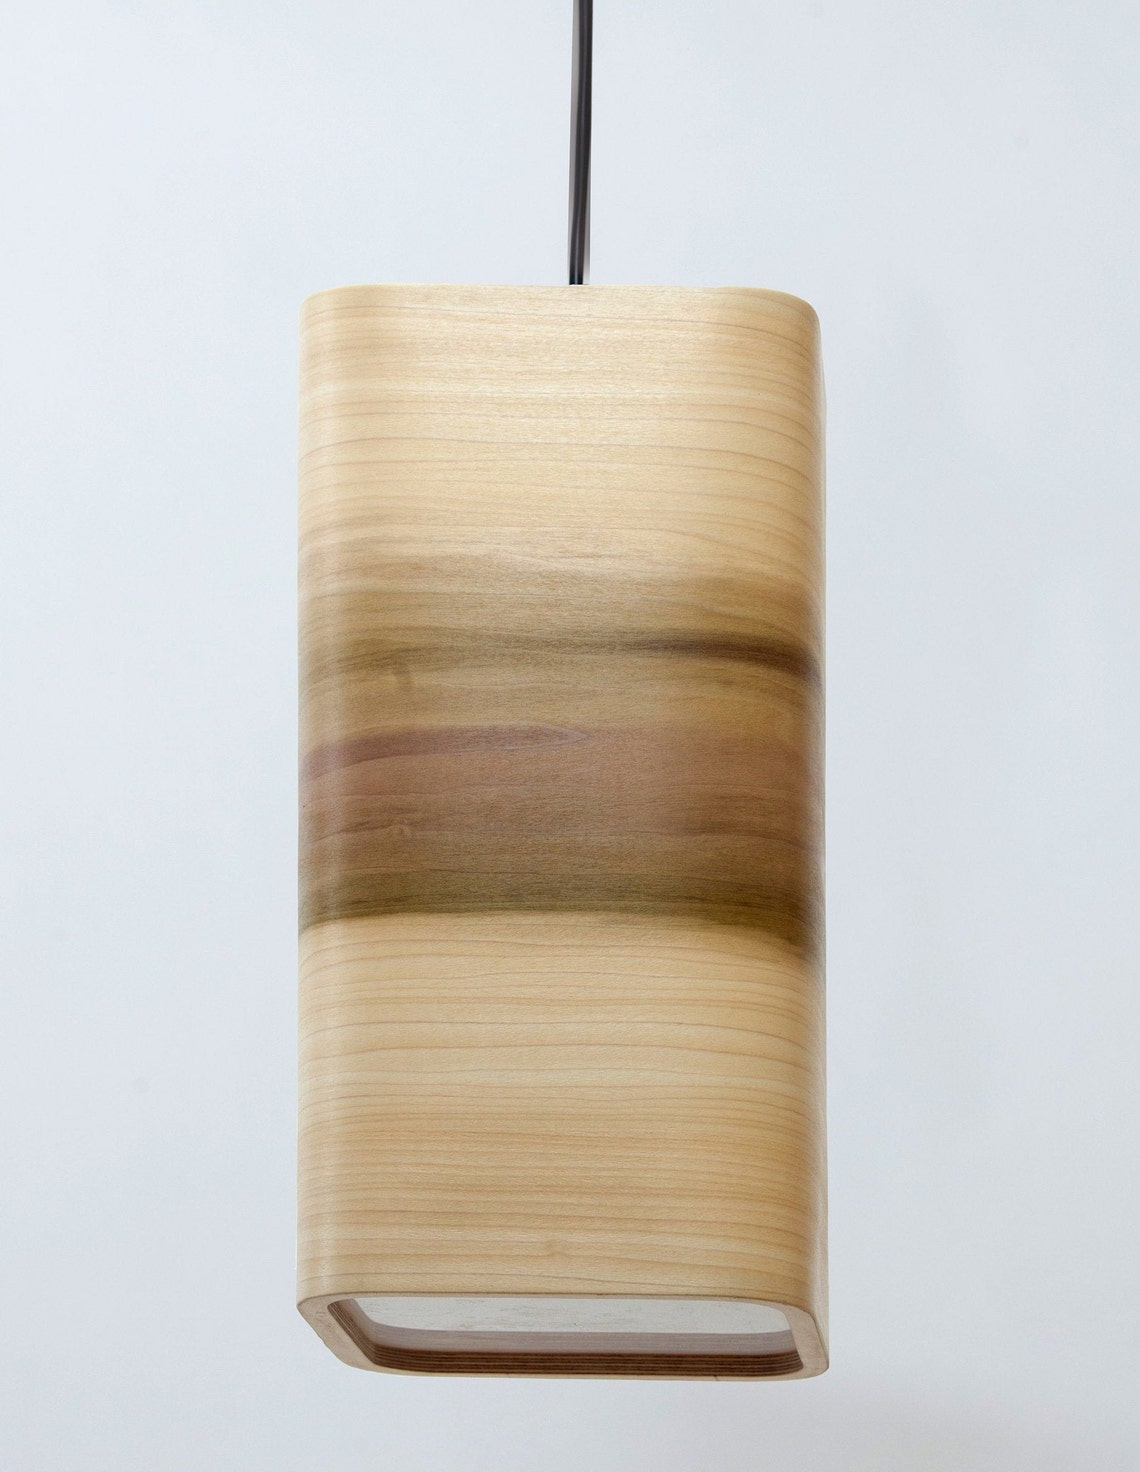 Wood Ceiling Light, Pendant Light, Tulipier Real Wood Veneer, Minimalist Lamp, Dining Table Handmade Light, Hanging Lamp, Wooden Lampshade.